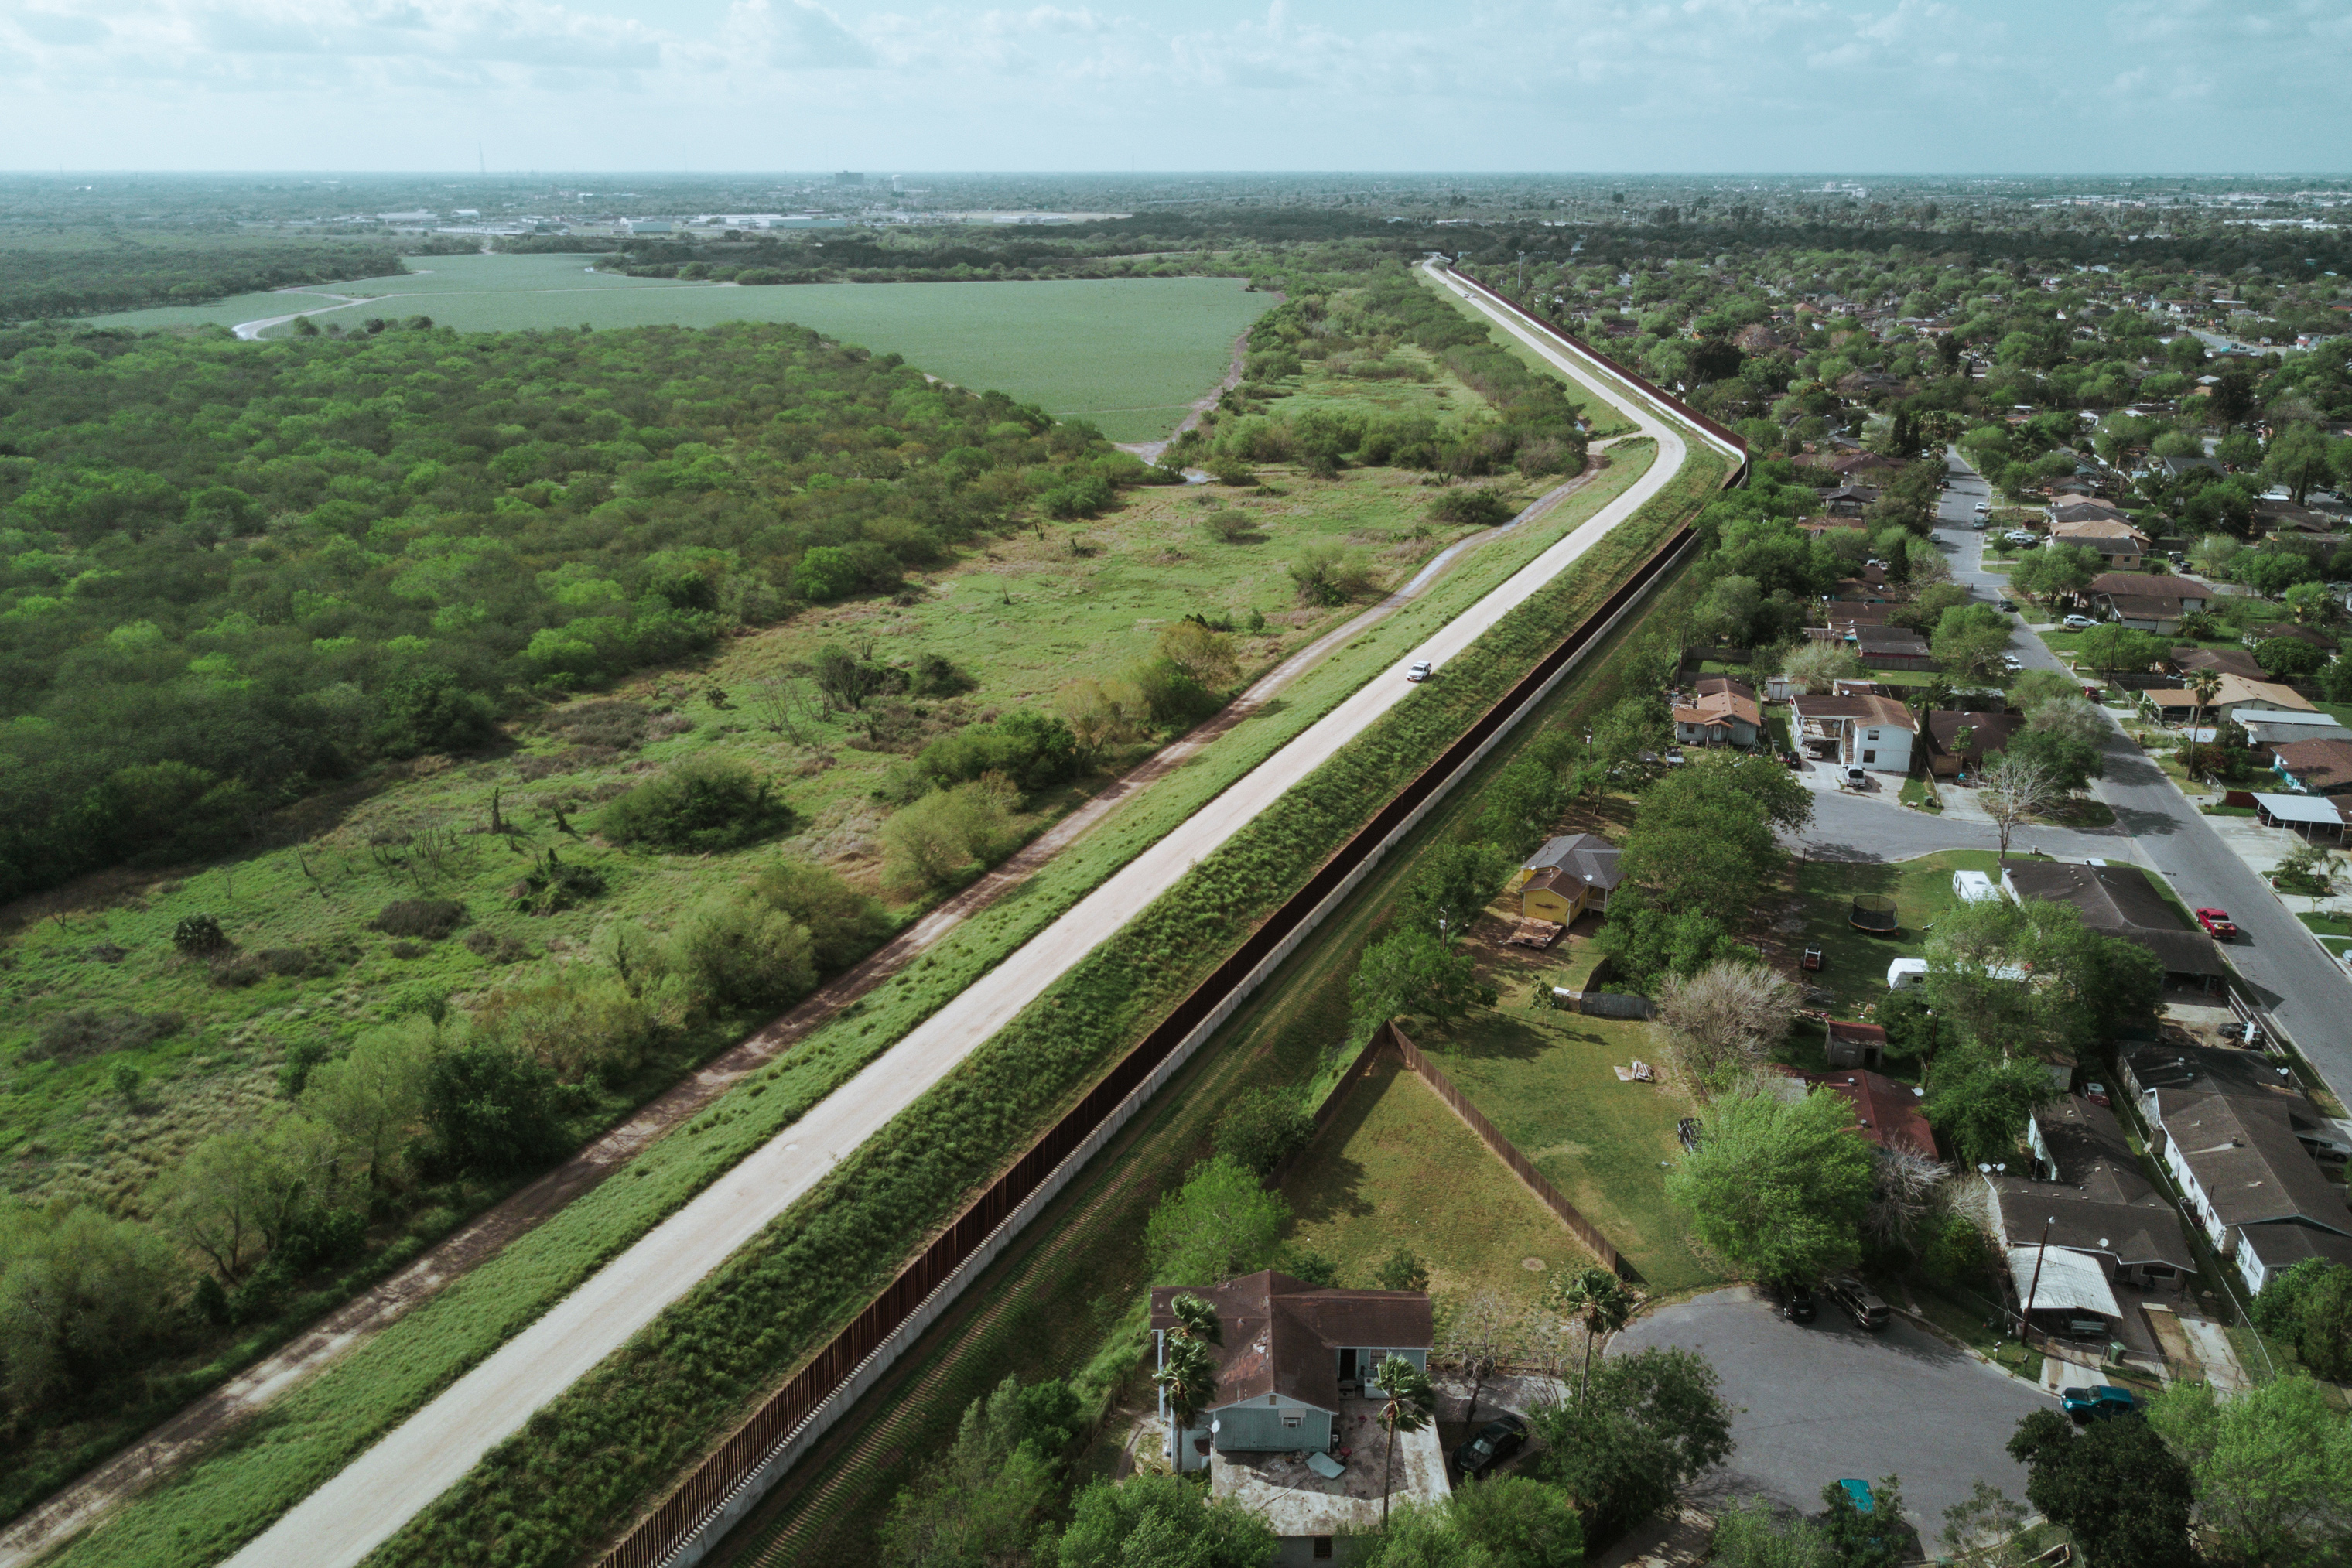 Aerial view of the border in Brownsville, Texas.